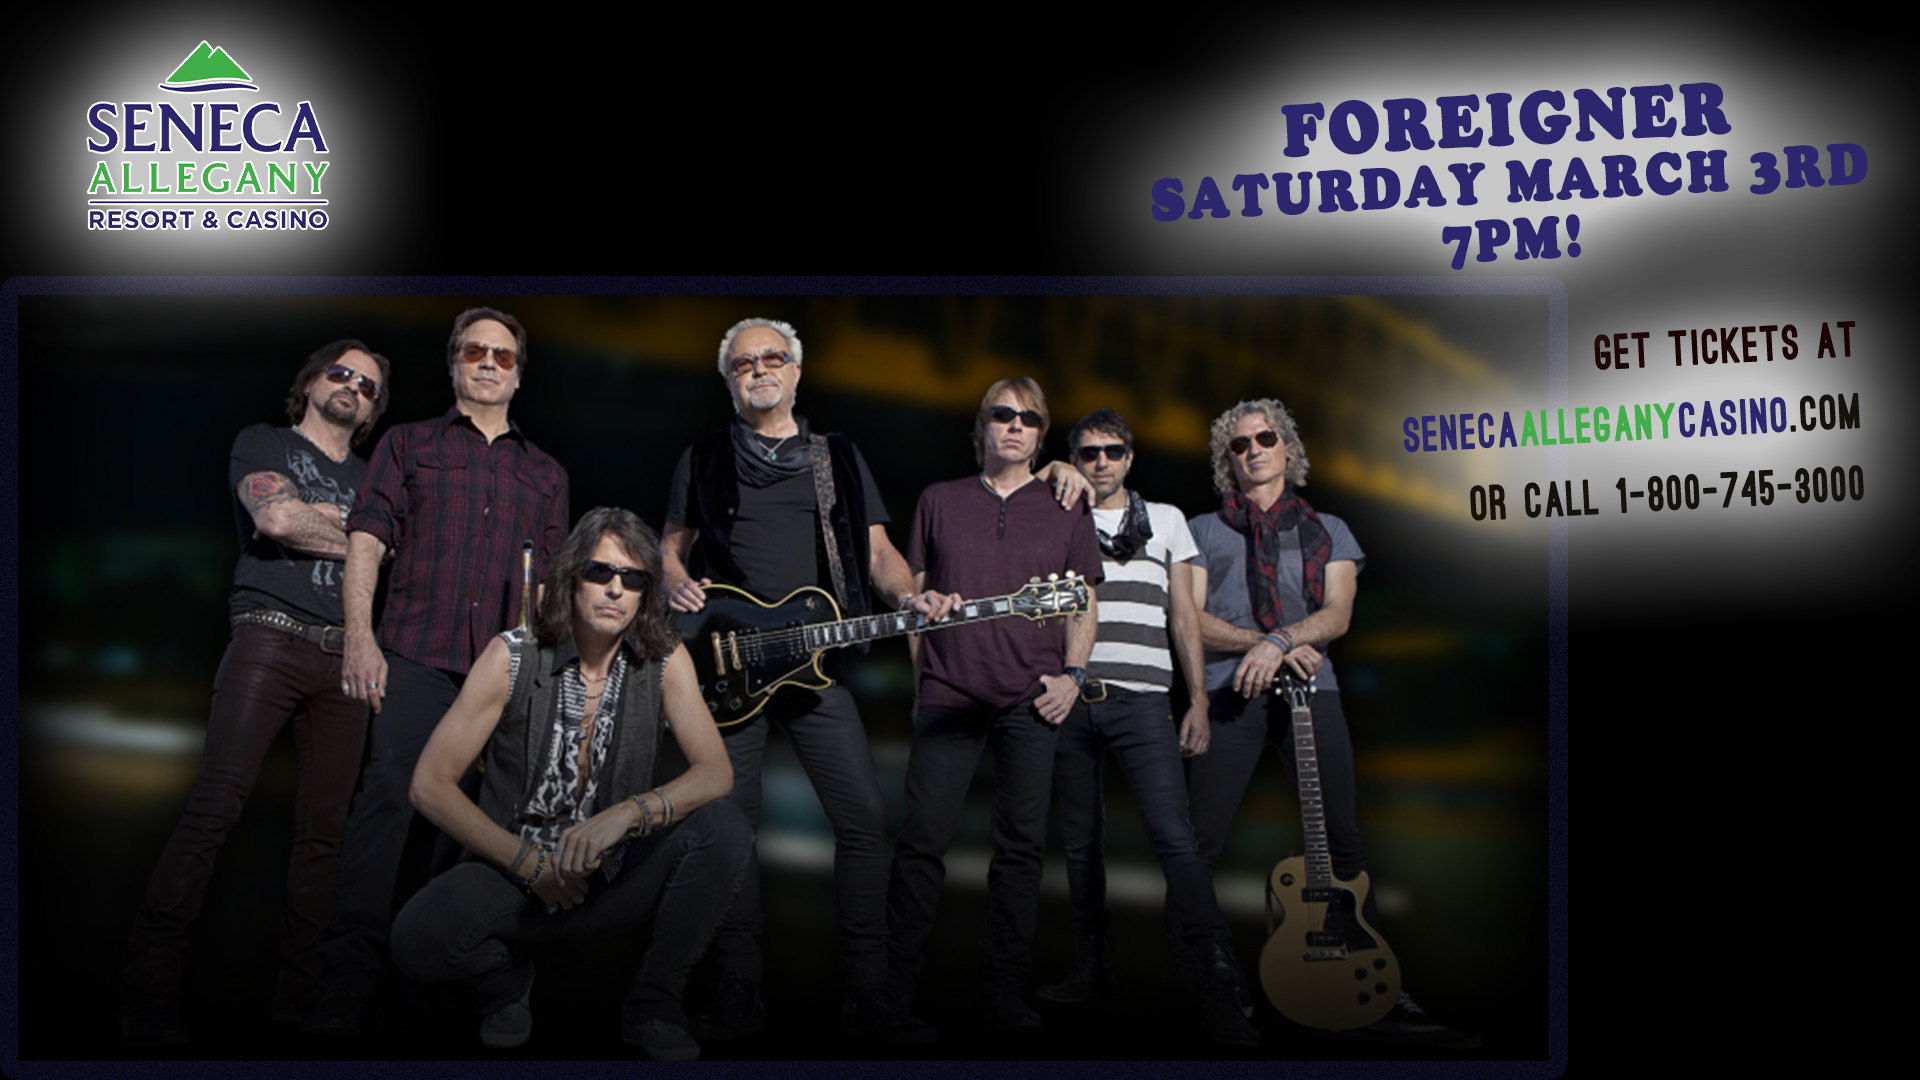 Foreigner at the Seneca Allegany Casino